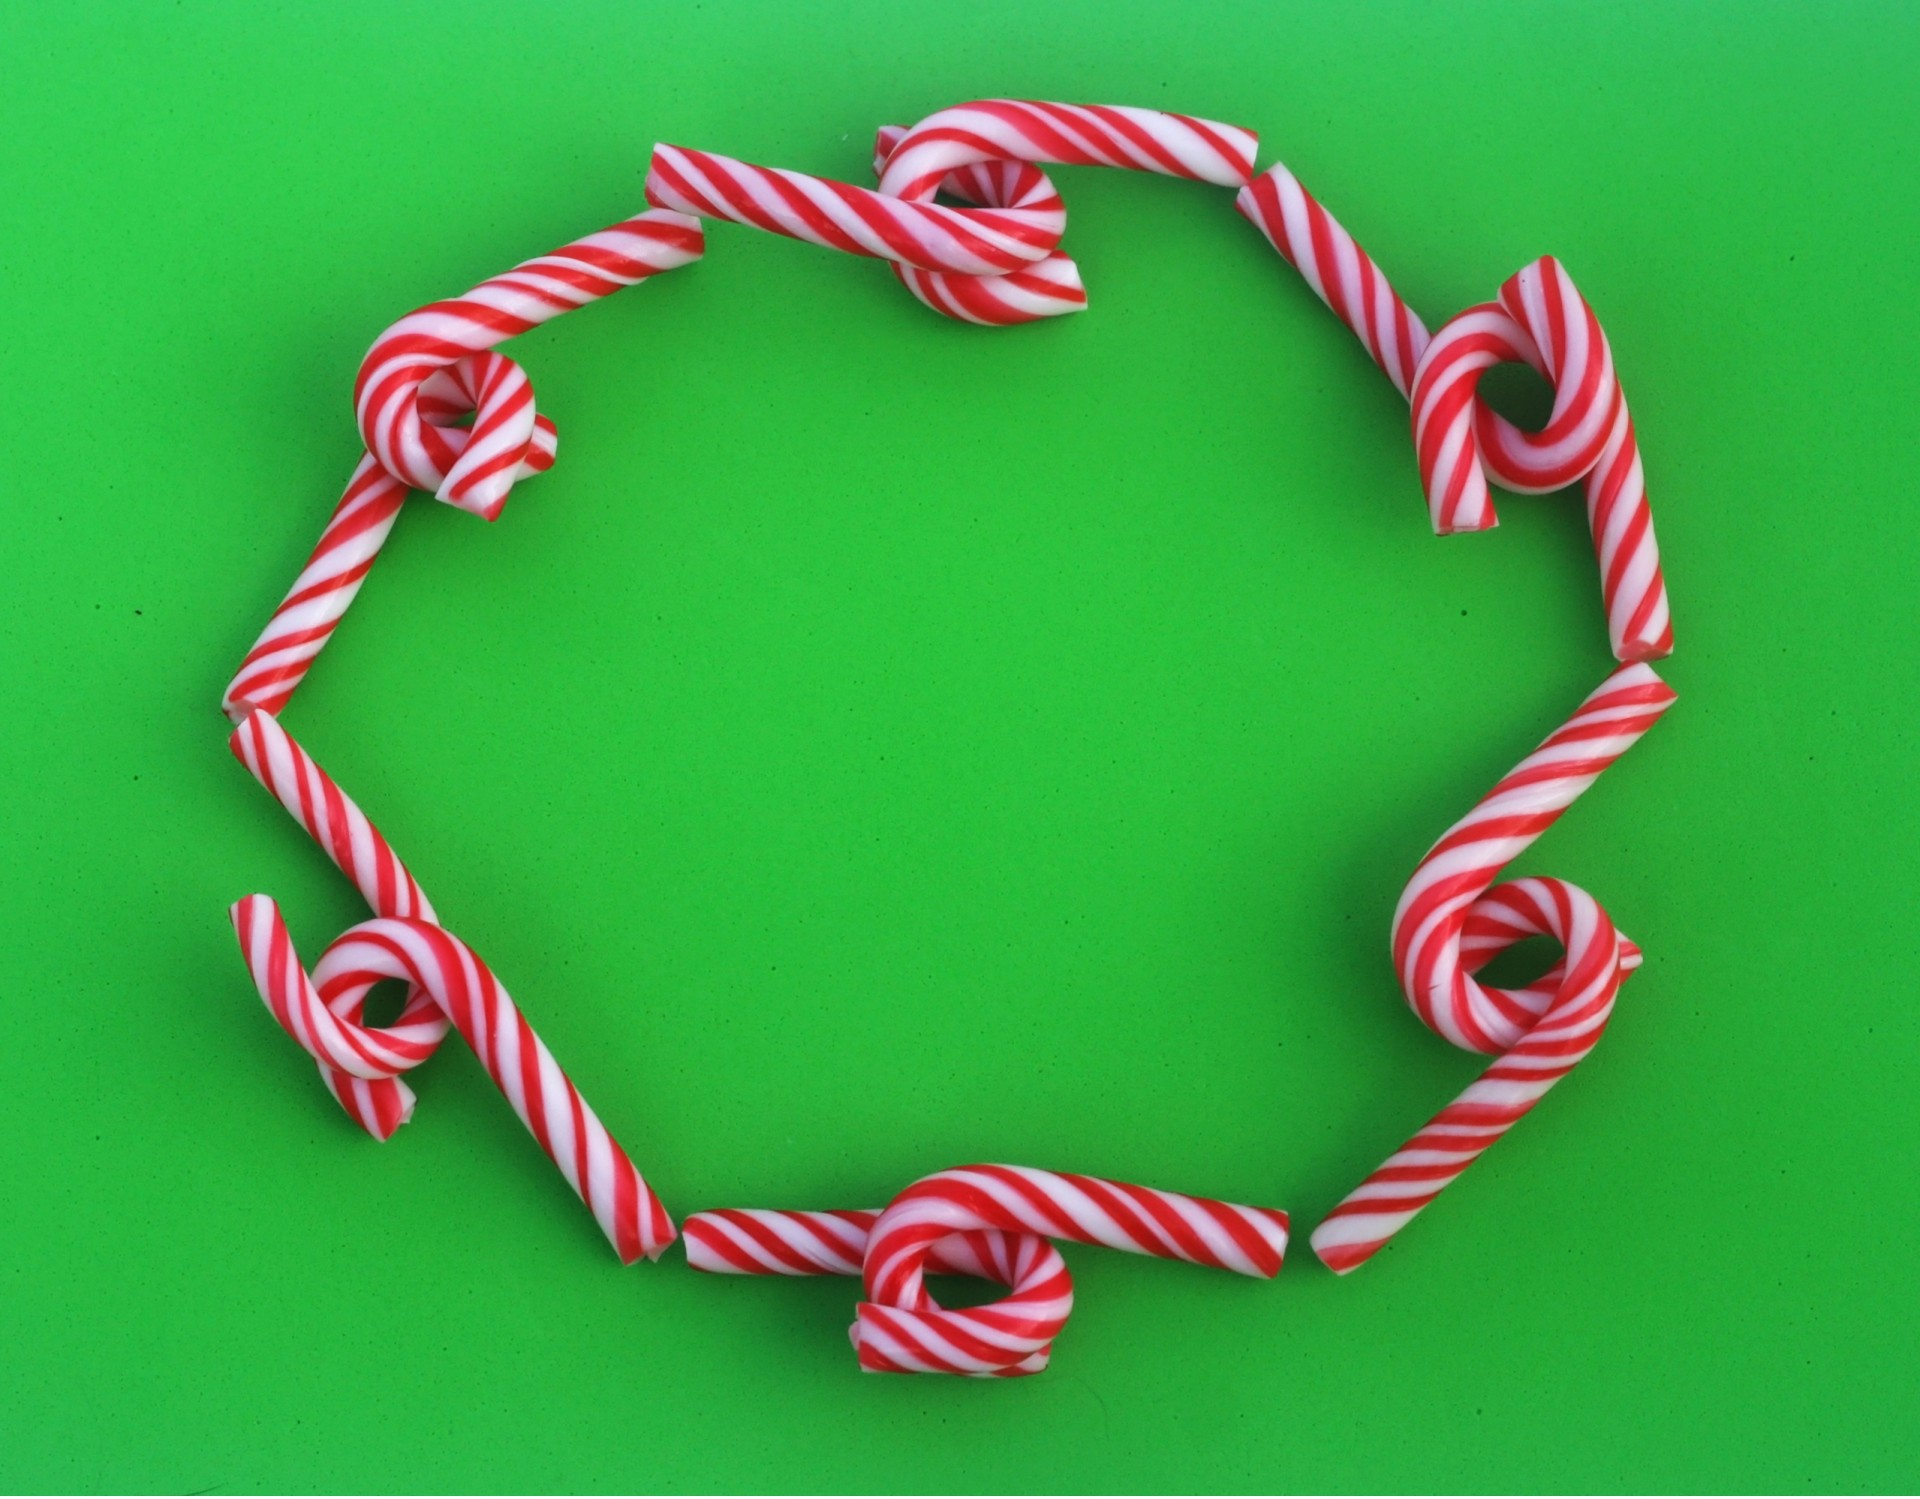 Candy Cane Frame Free Stock Photo